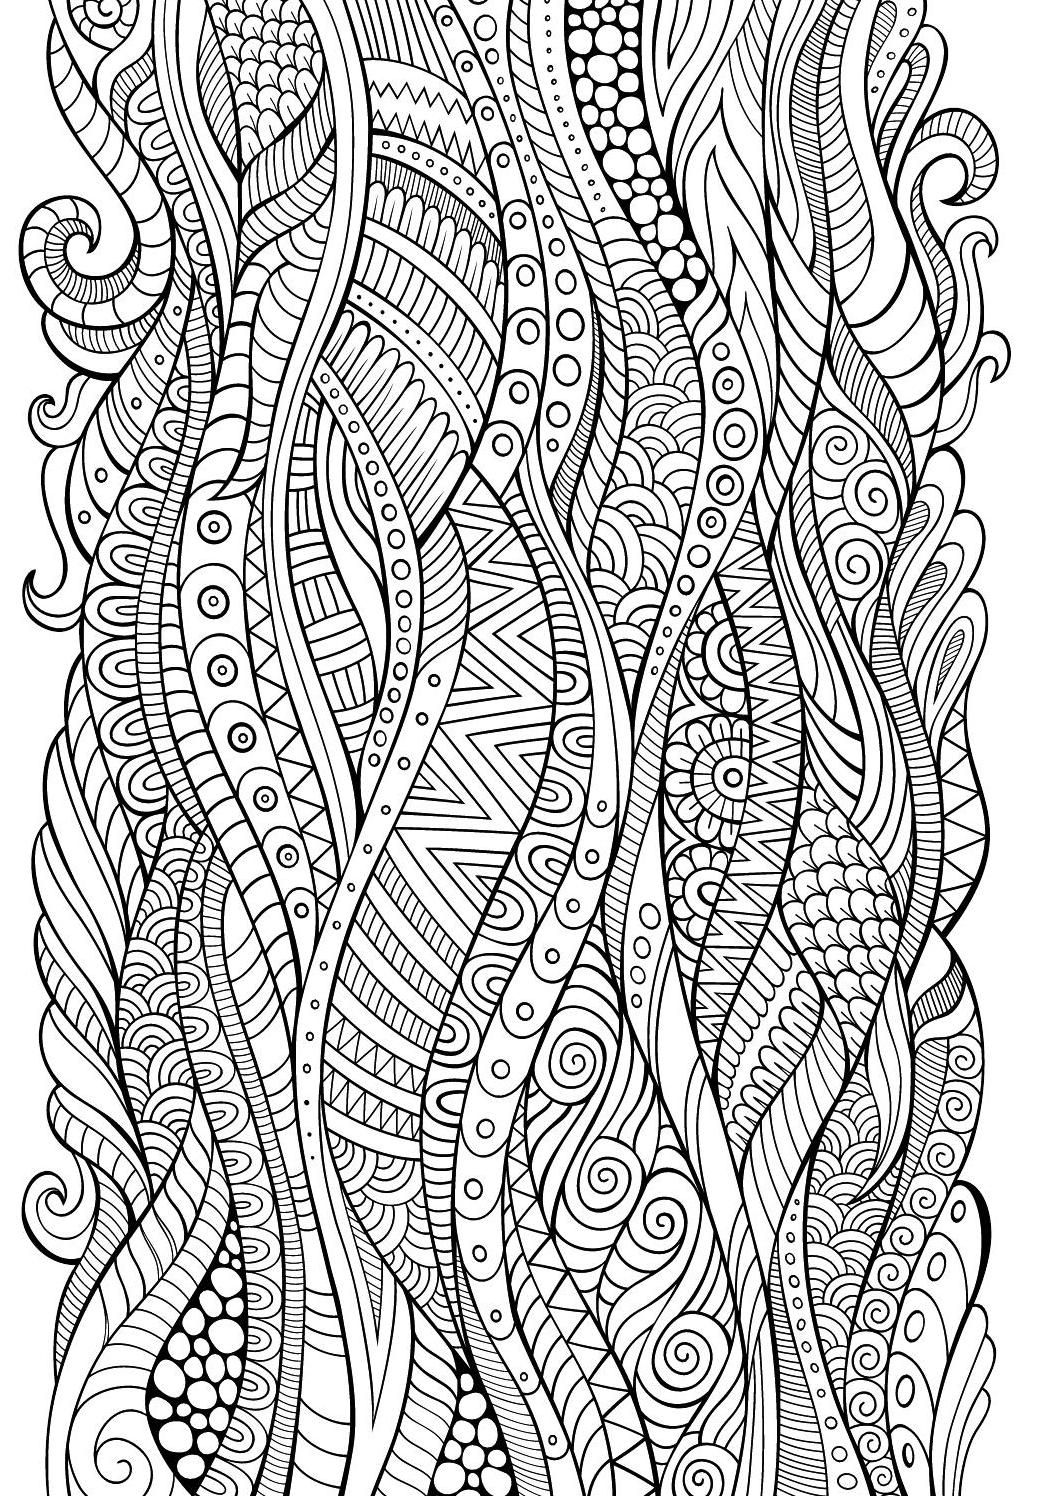 Colour Calm 05 (Sampler) in 2020 | Zentangle drawings ...